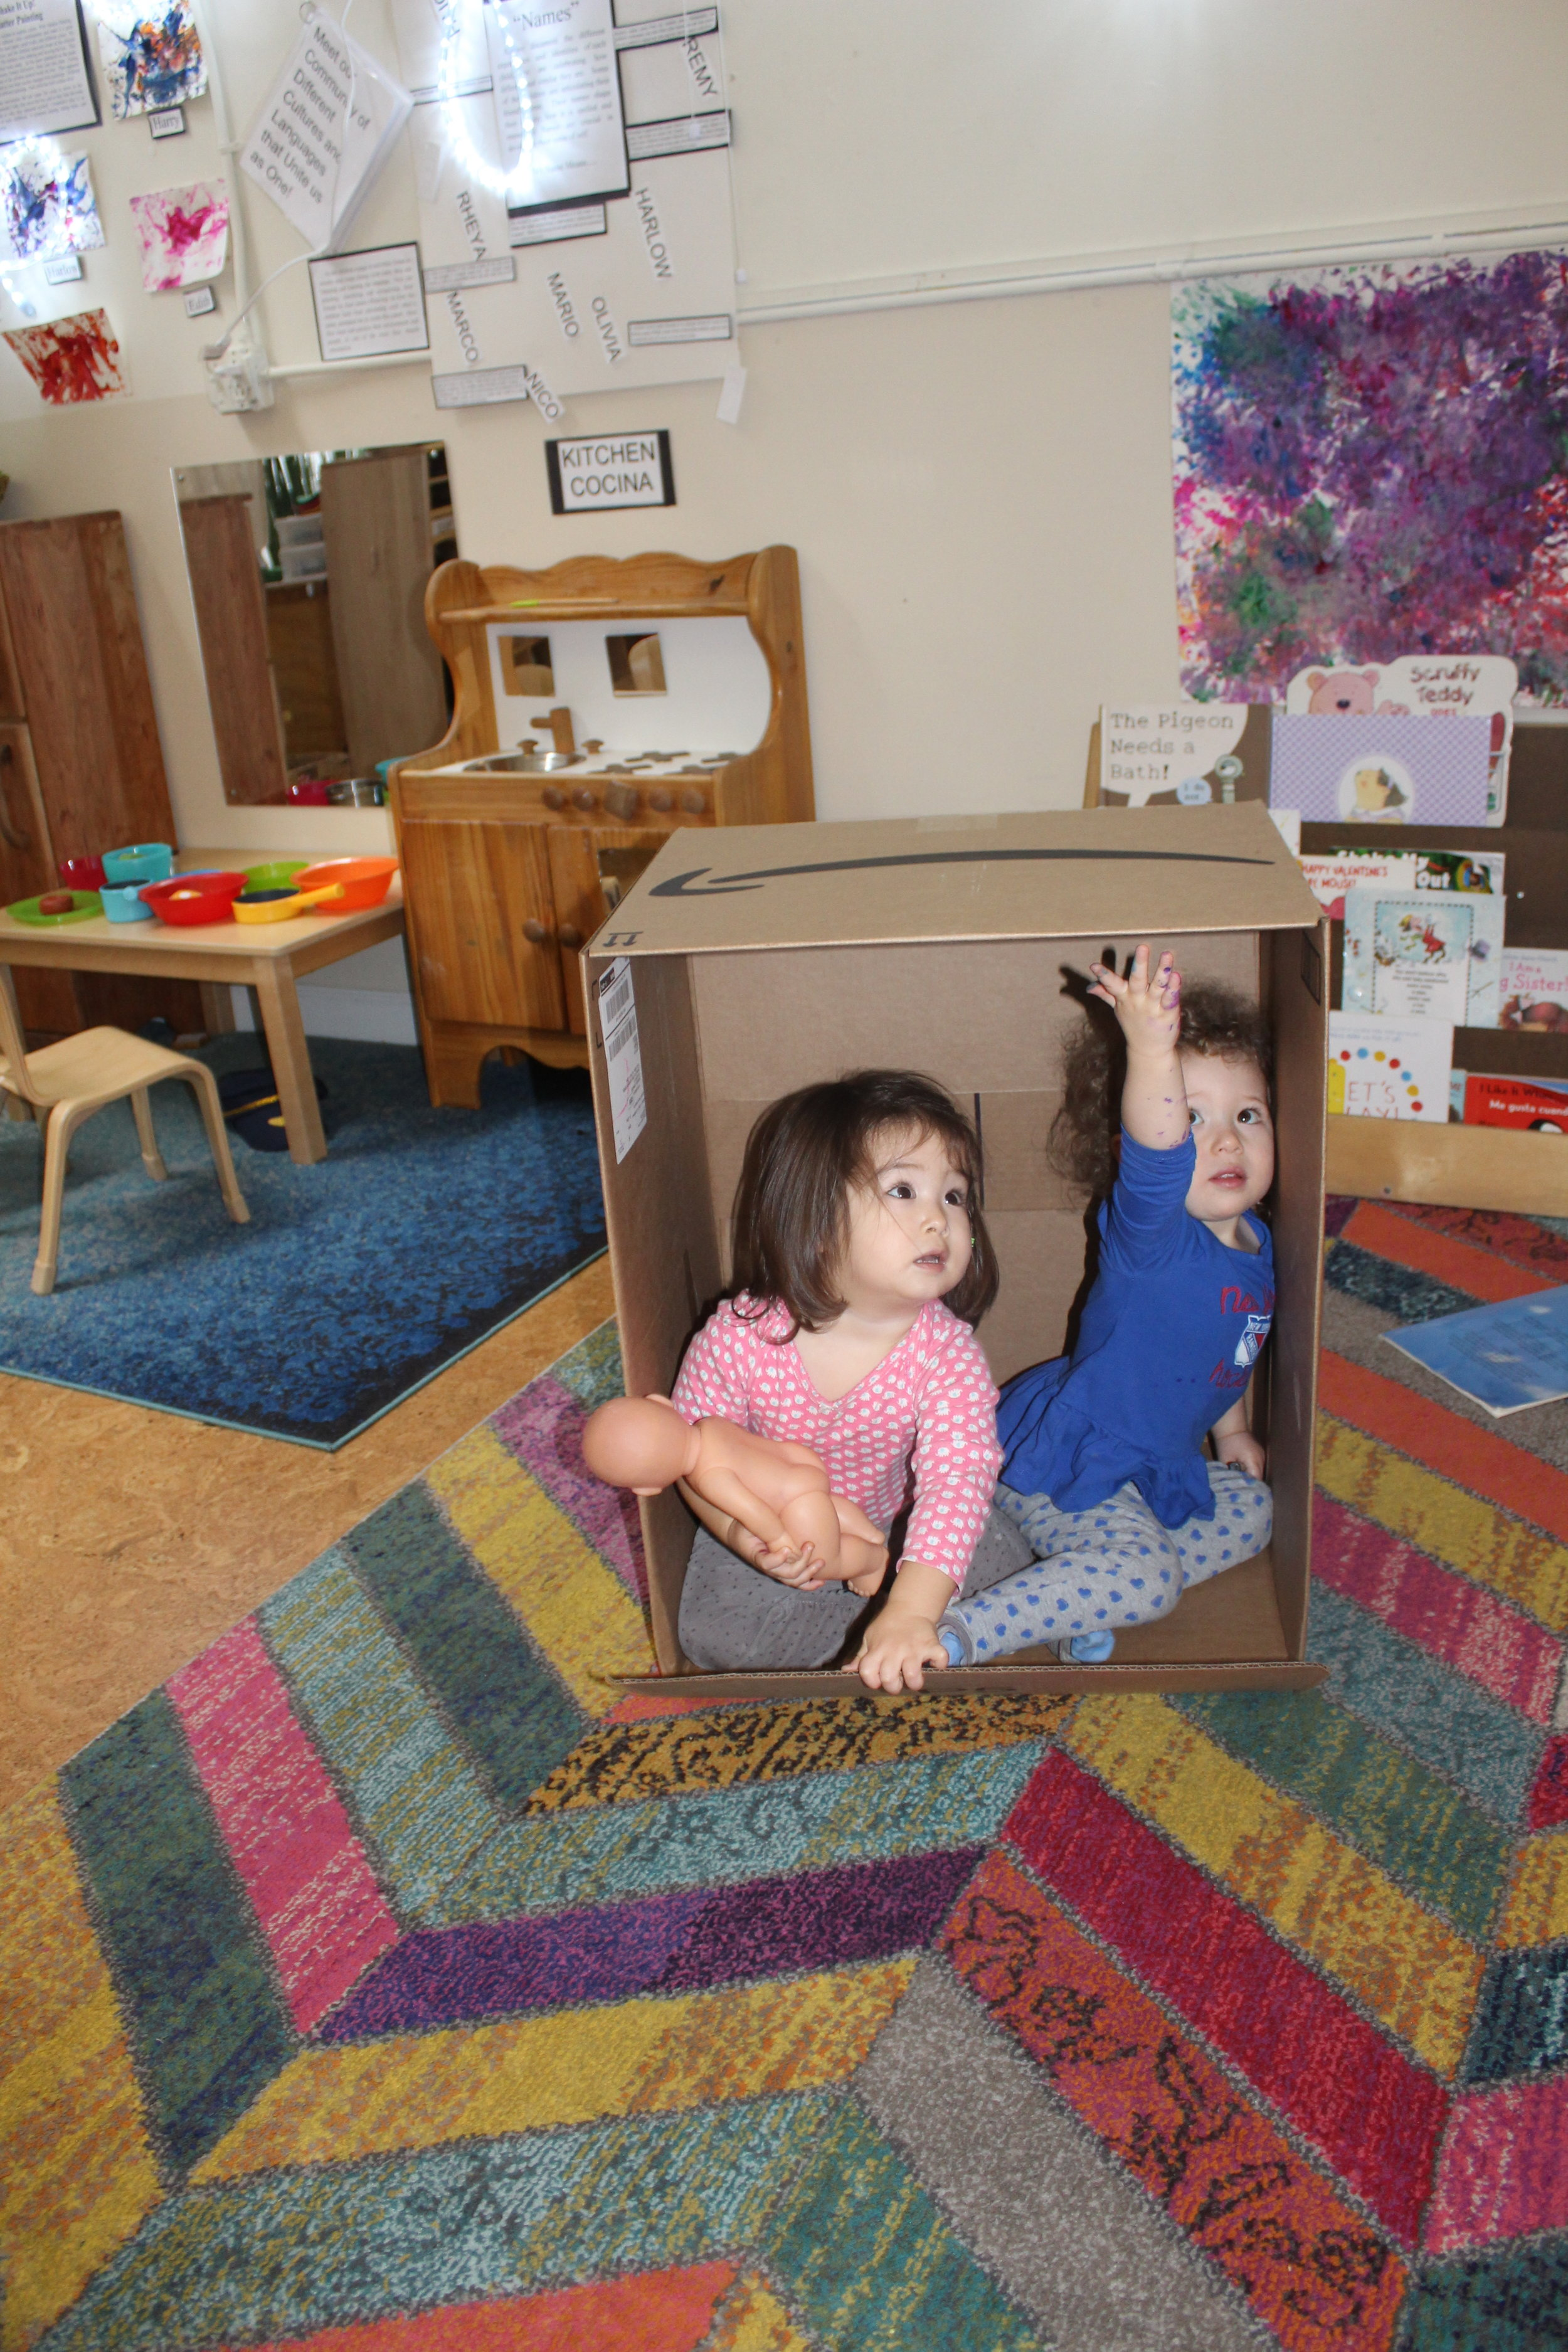 Remy looked curious and interested as she sat in the box. Soon, Rheya joined Remy in the box. The box appeared small for both children, but they both managed to create sufficient space.  It seemed that the two of them had a lot of fun sitting together sharing the space!